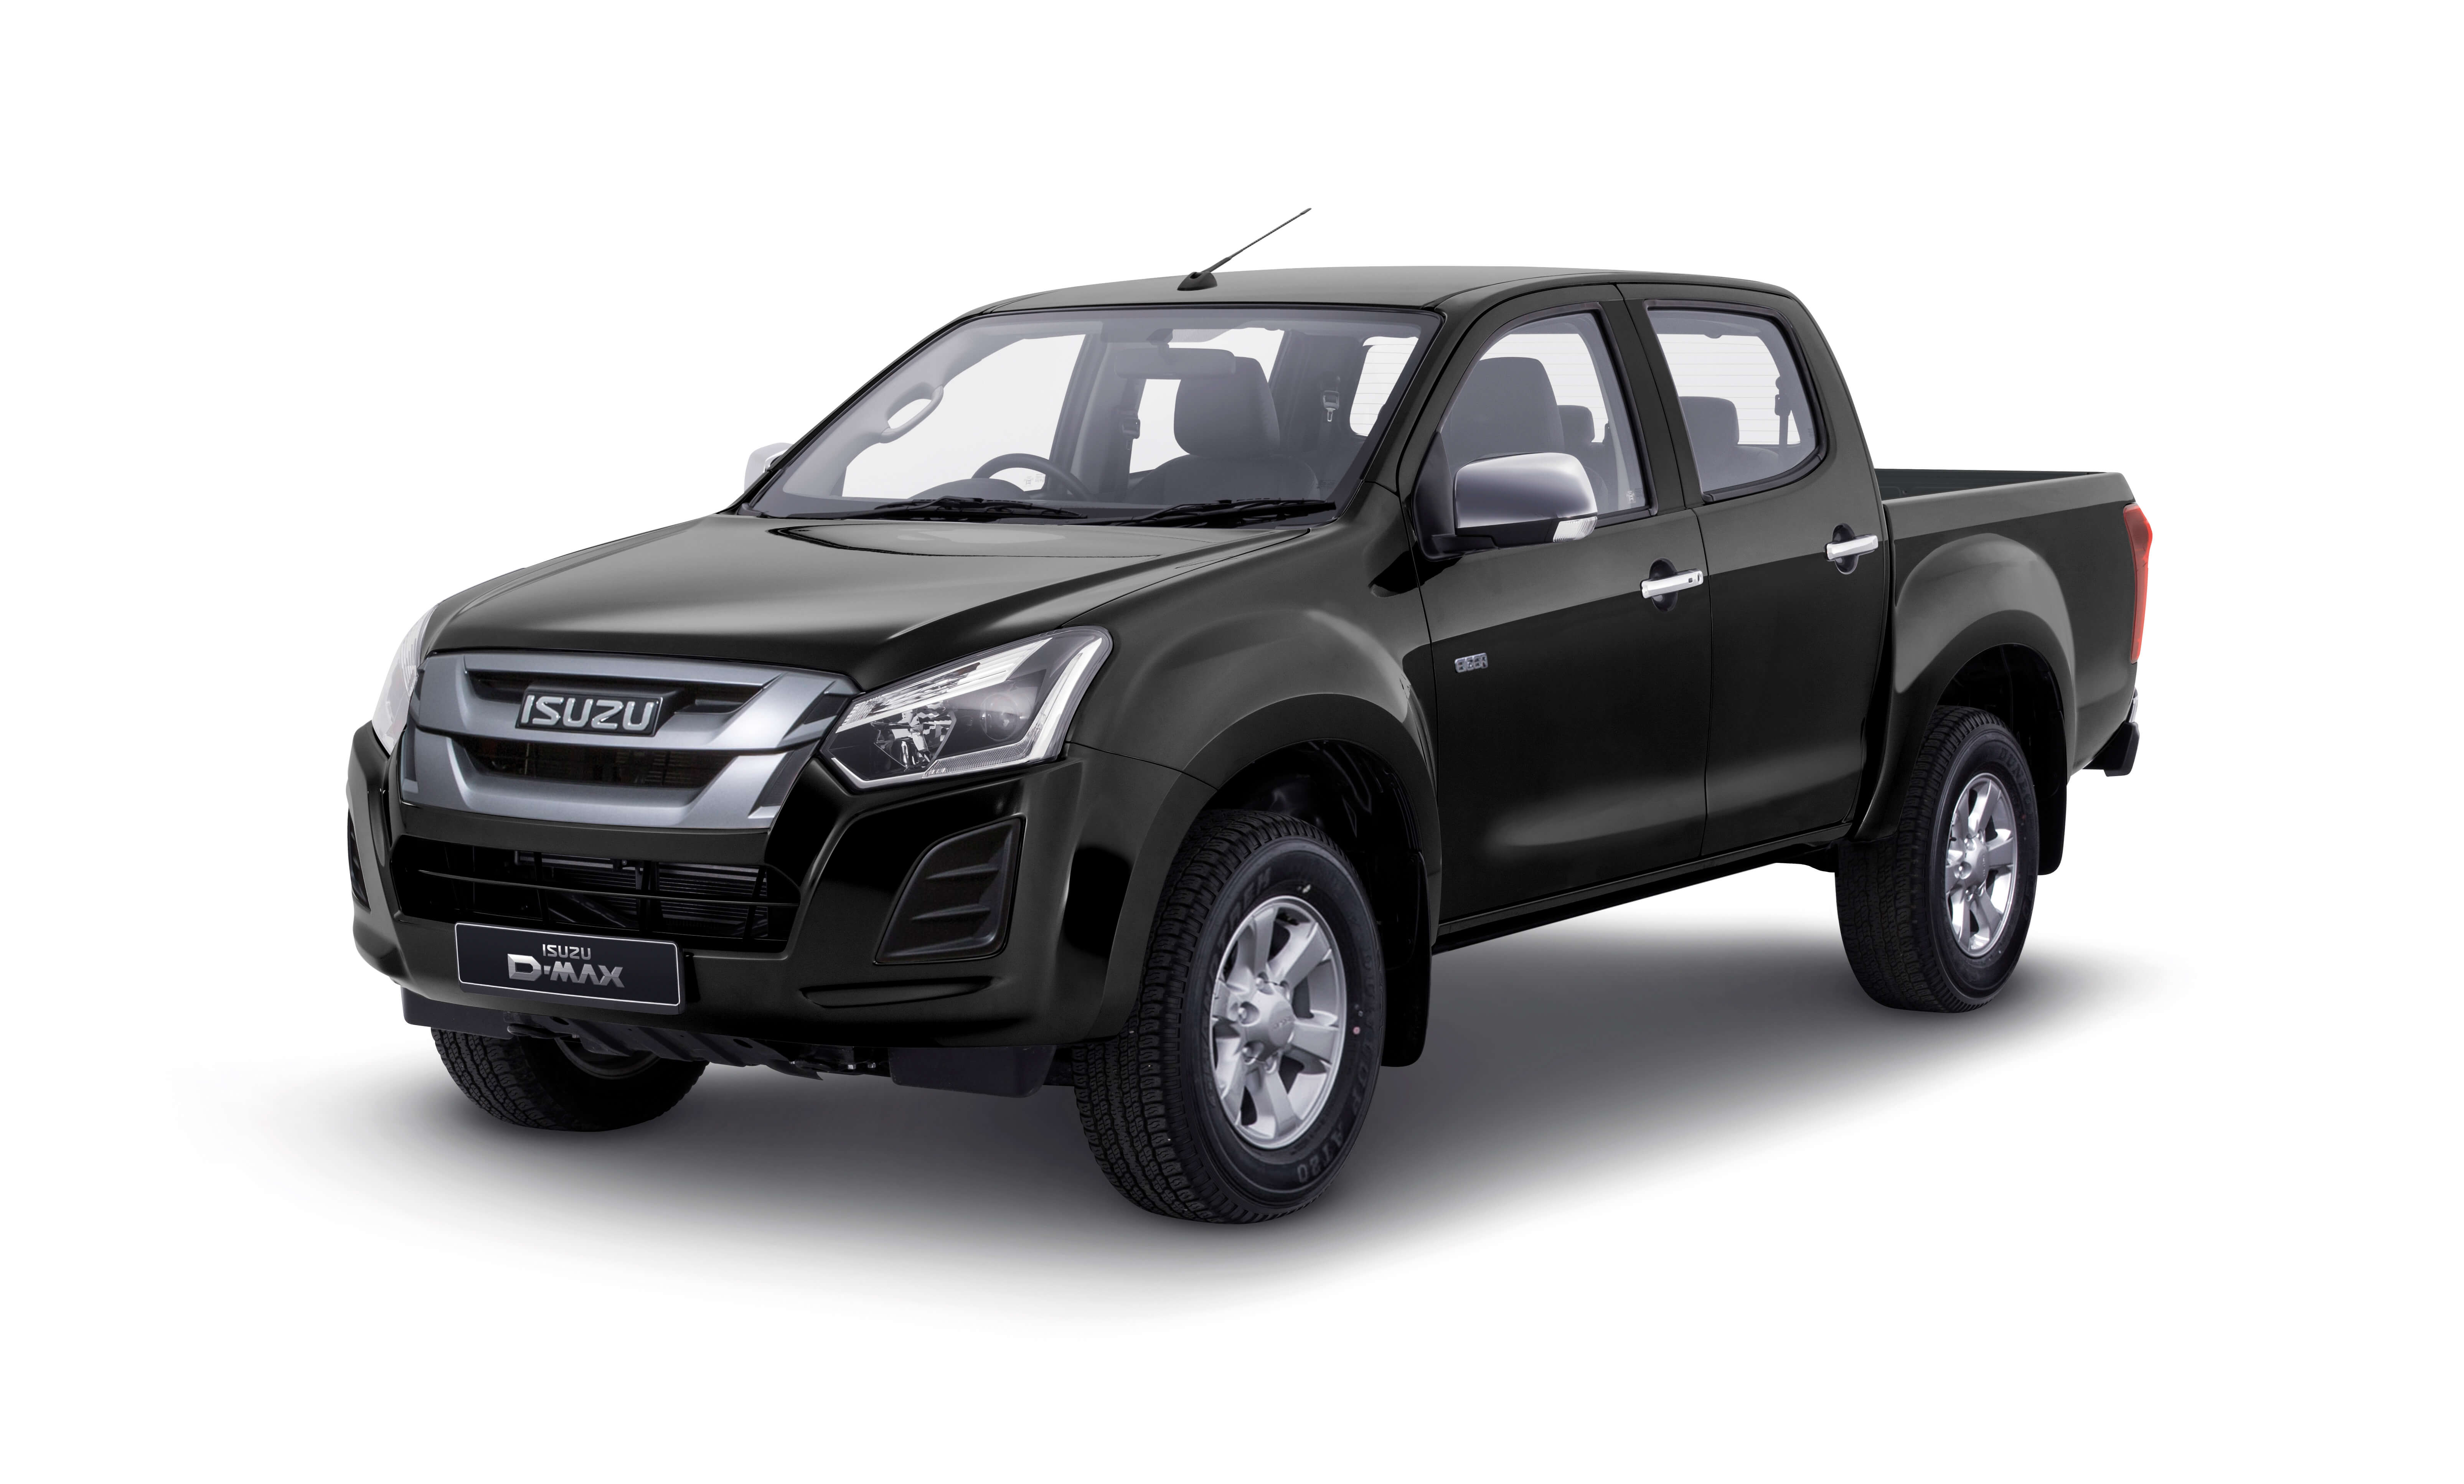 Isuzu D-Max Eiger front view in black